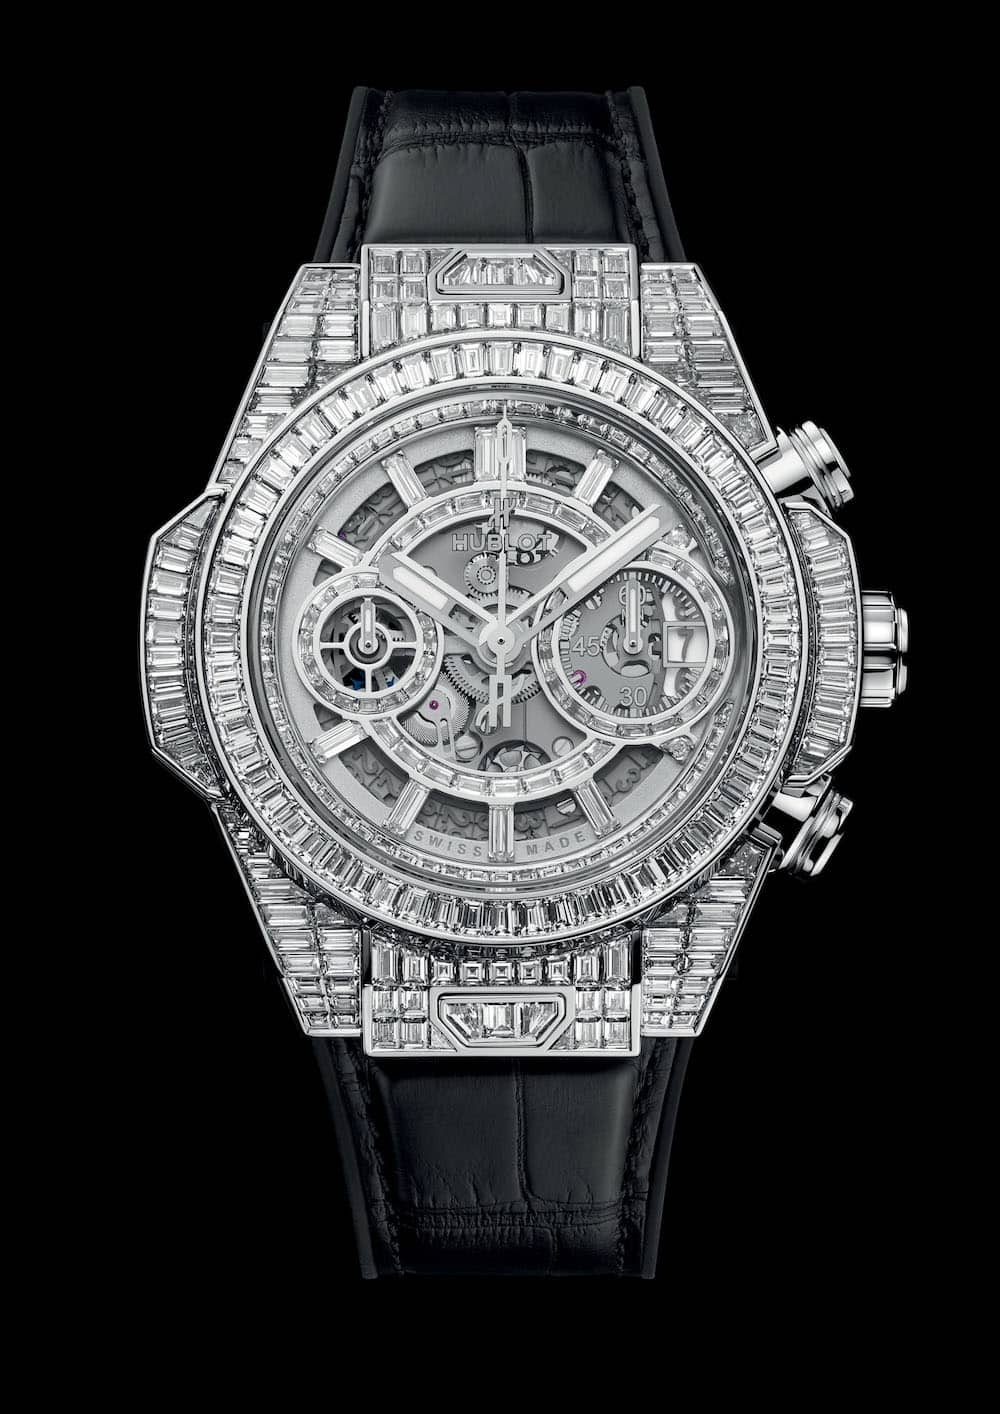 Hublot High Jewellery Collection 9